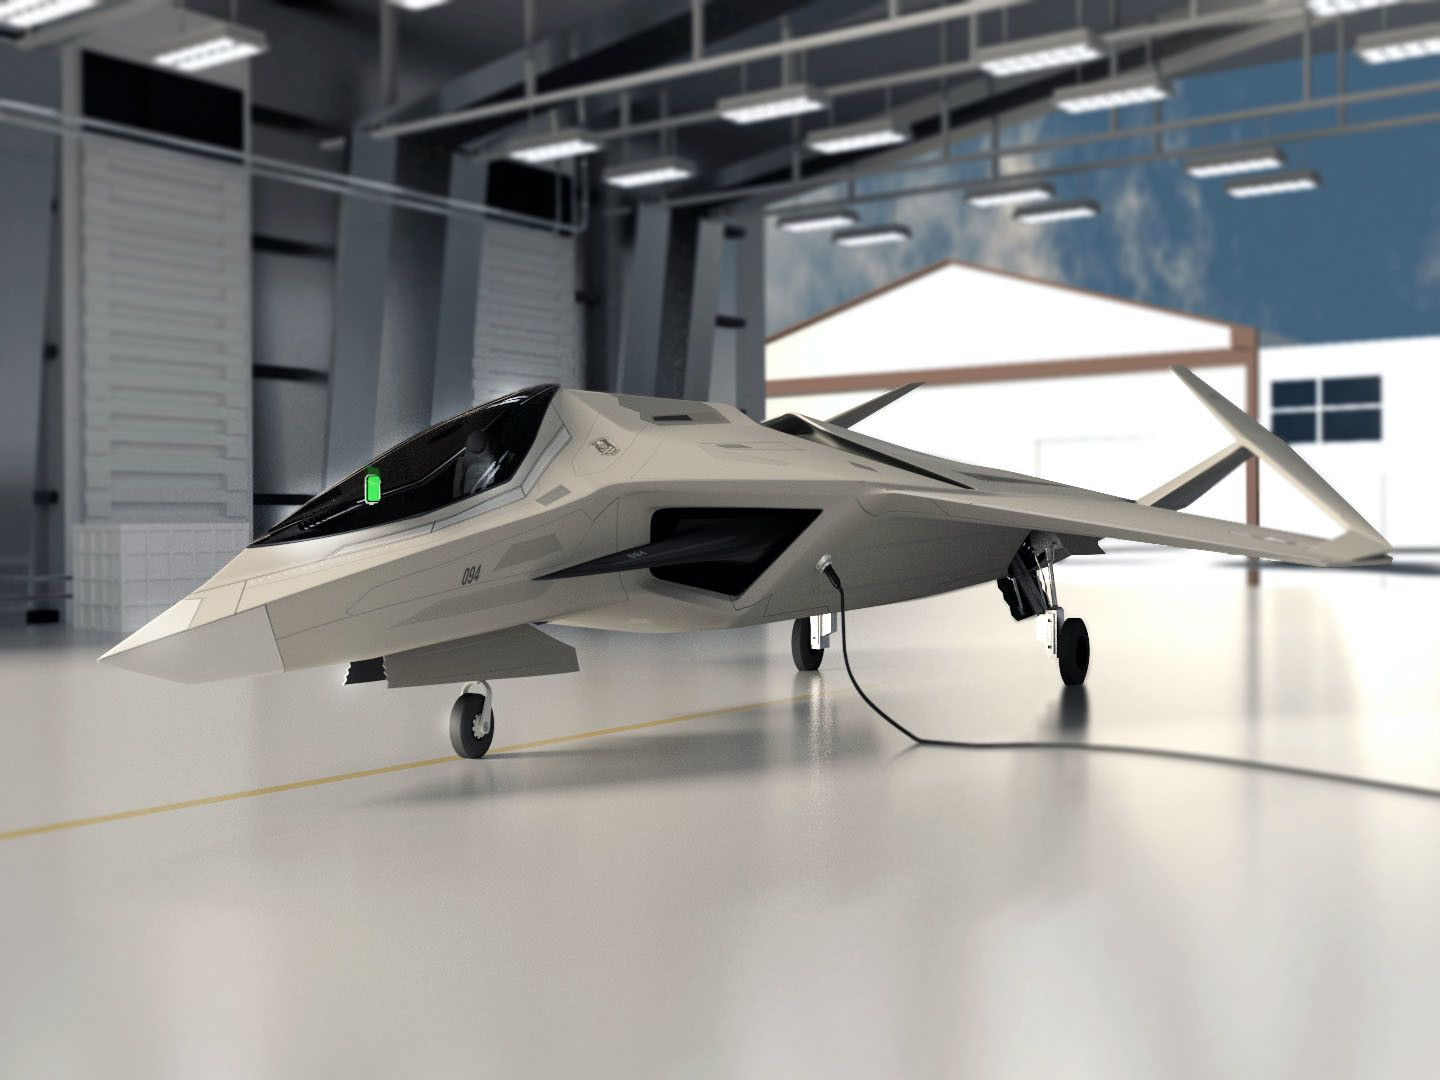 All Types f 22 raptor specs : The next generation fighter jet that will replace the f-22 raptor ...